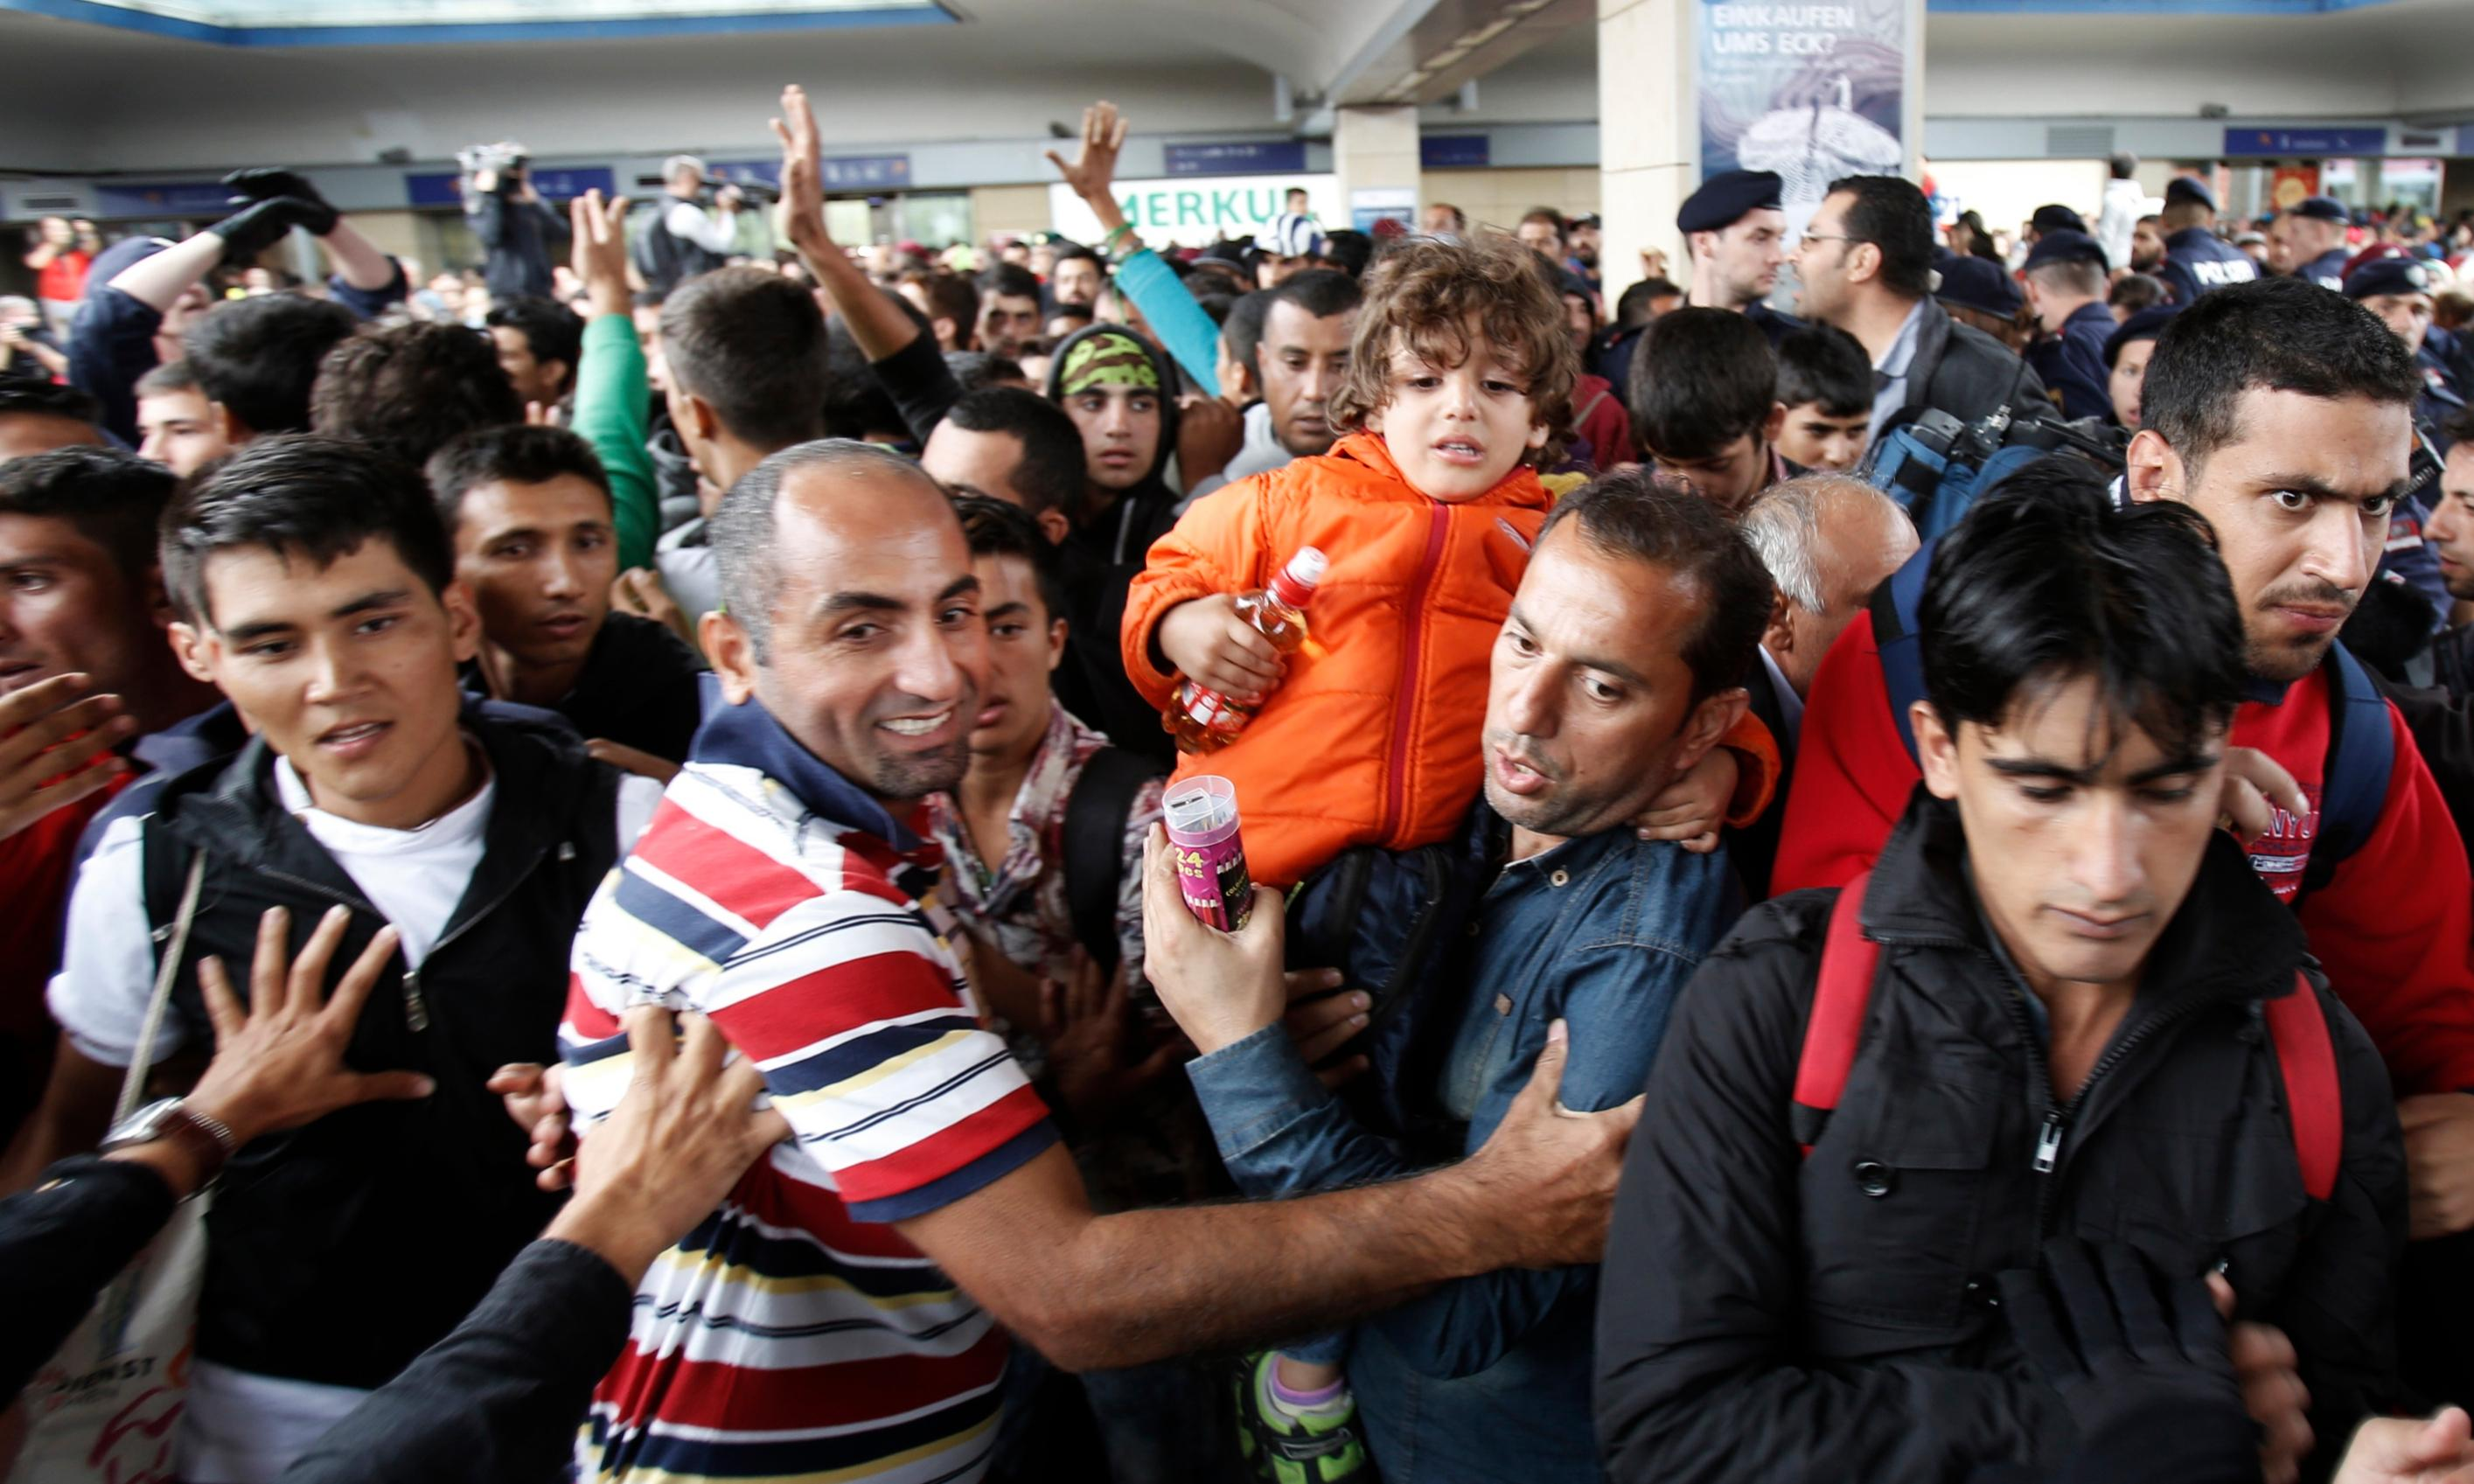 Elation as migrants are received with open arms in Austria and Germany